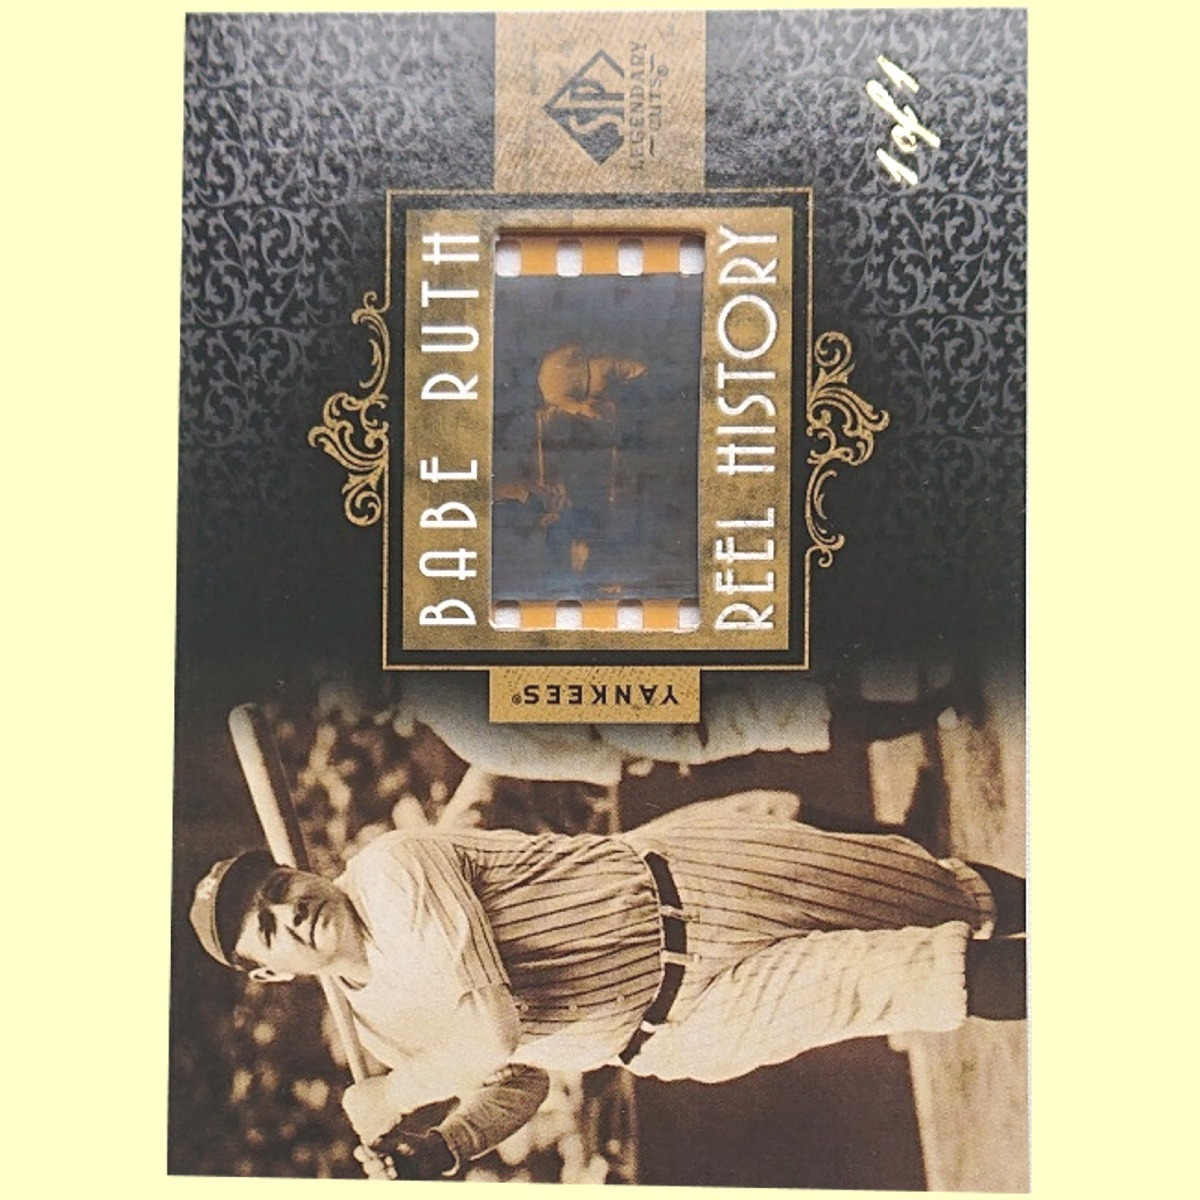 【1 of 1 Film】 Babe Ruth 2007 UD Sp Legendary Cuts Babe Ruth Reel History 1枚限定 ■検索:ベーブ・ルース フィルム カード 1/1